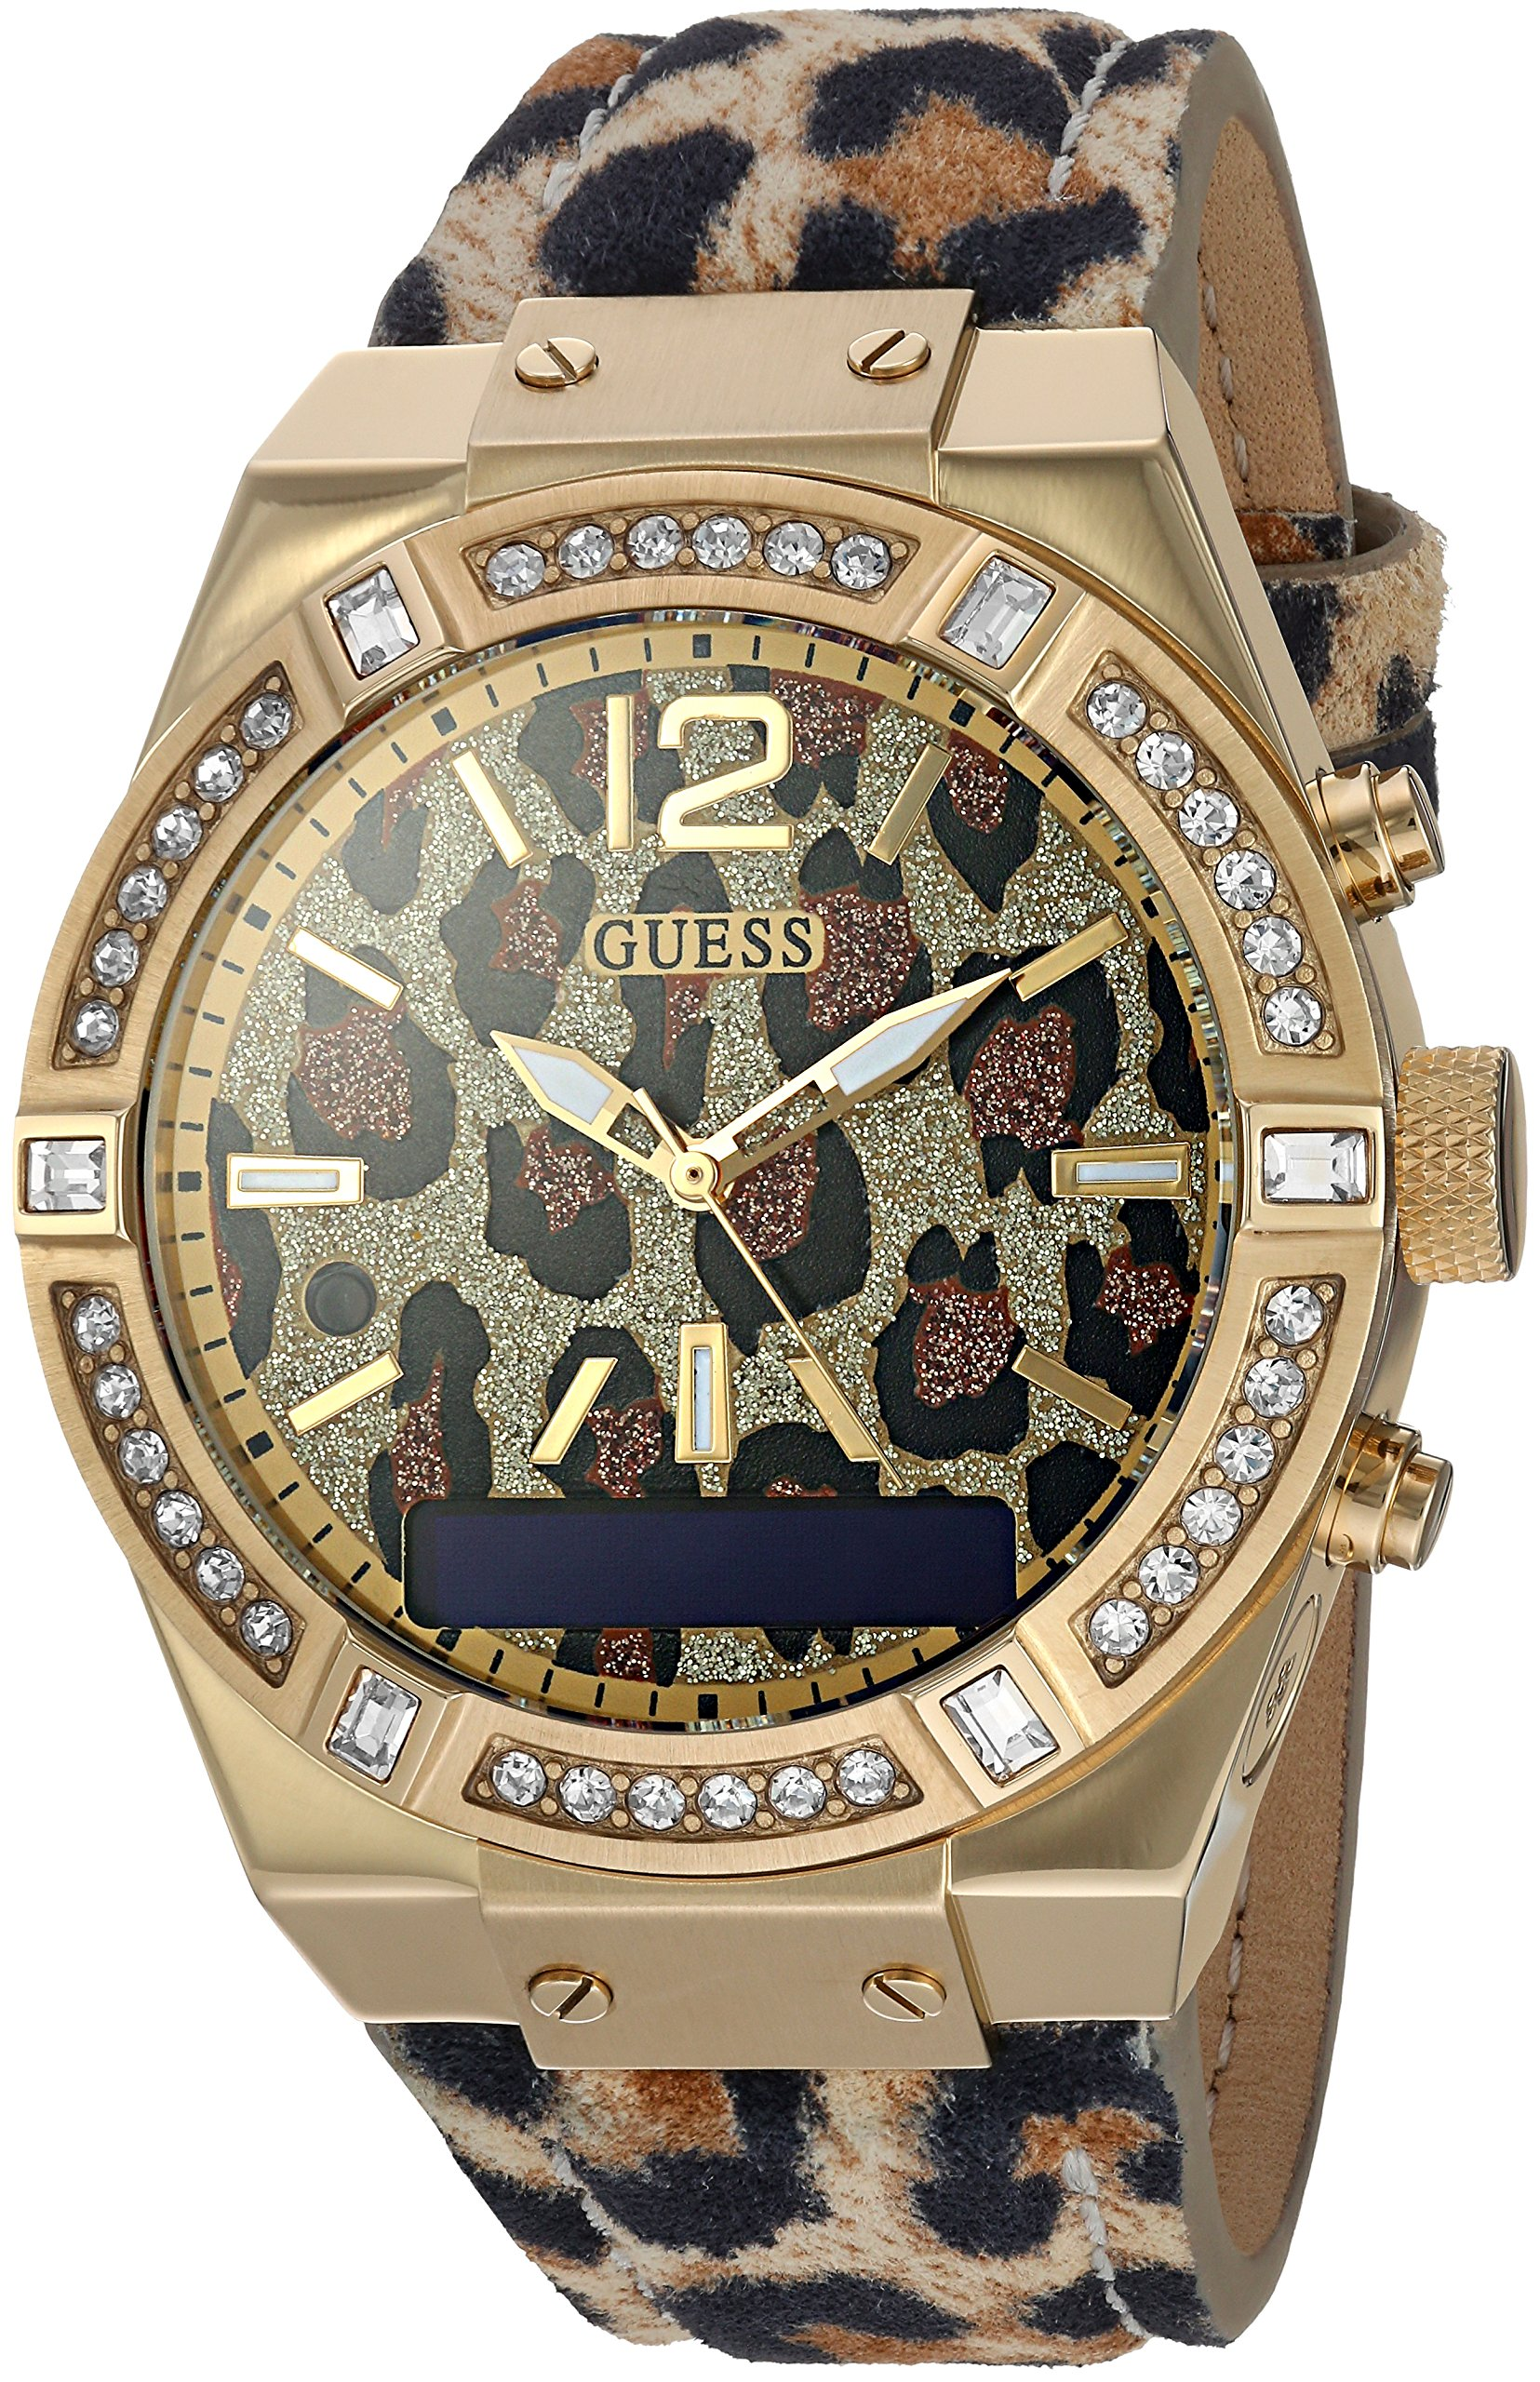 Guess Women's Stainless Steel Connect Smart Watch - Amazon Alexa, iOS and Android Compatible, Color: Leopard (Model: C0002M6) by GUESS